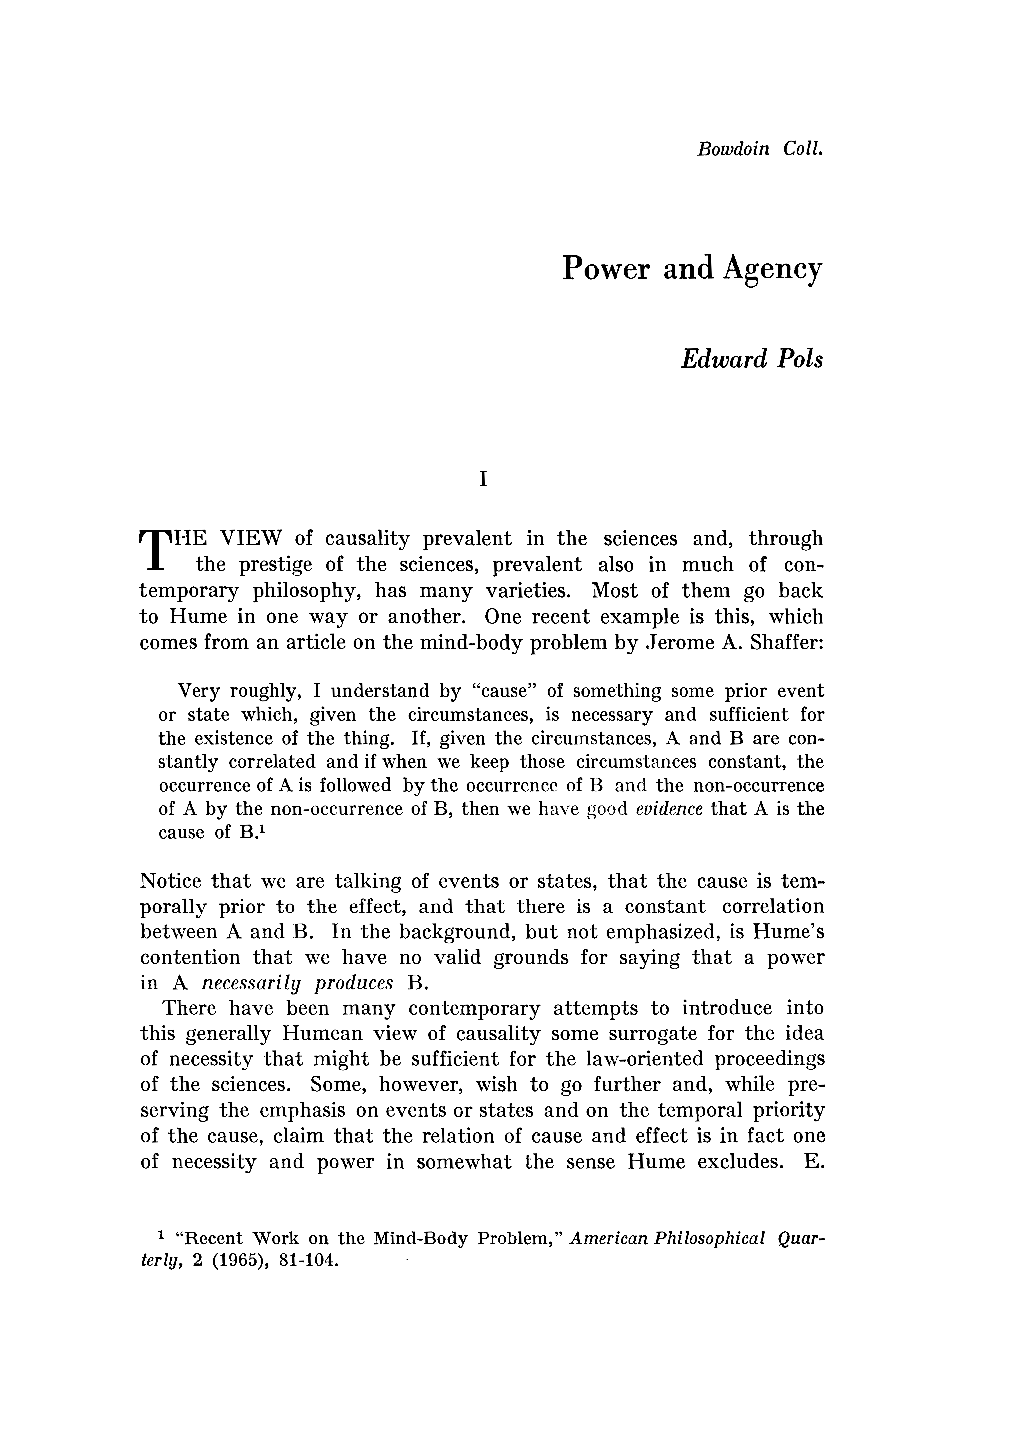 power and agency edward pols international philosophical document is being loaded